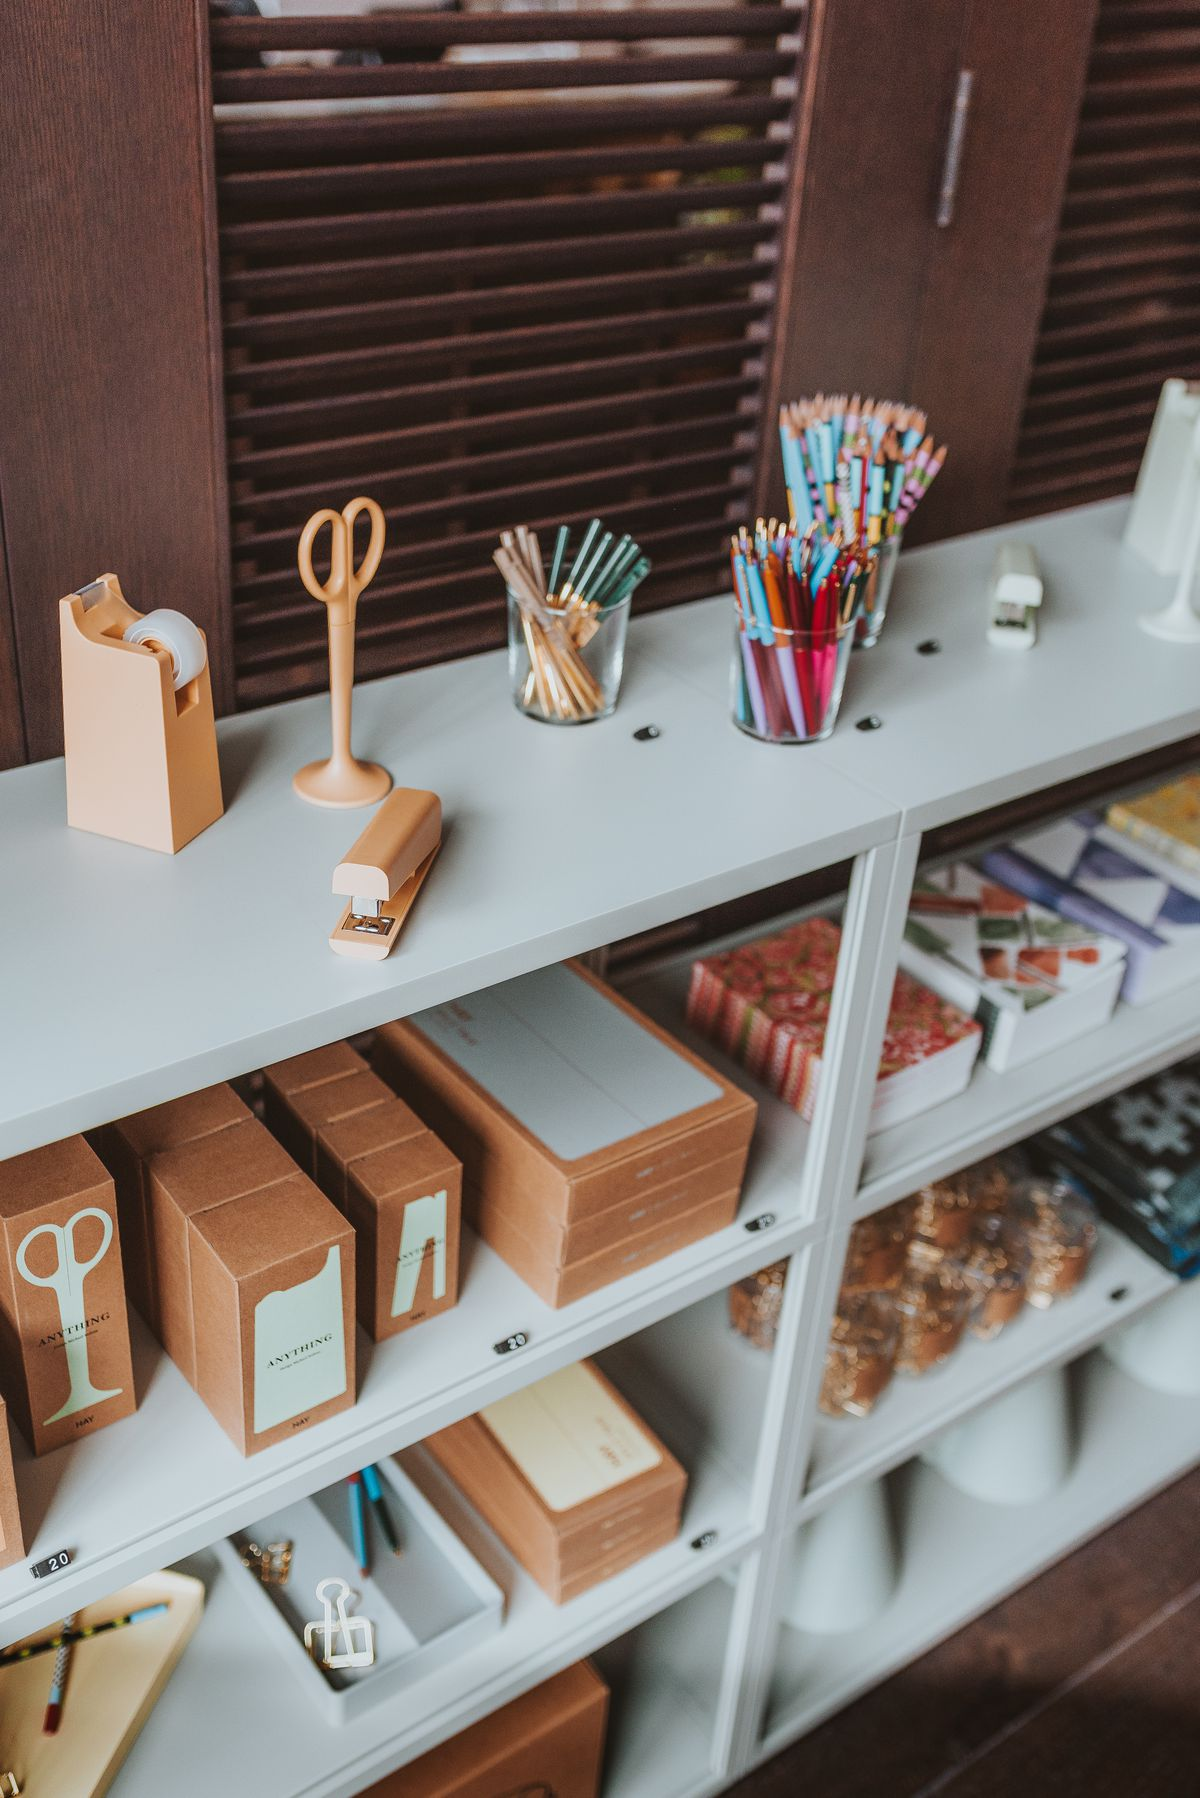 A close-up of the shelve with desk items like a matching tape dispenser, stapler, and scissors. There are three glass cups with colorful pencils.